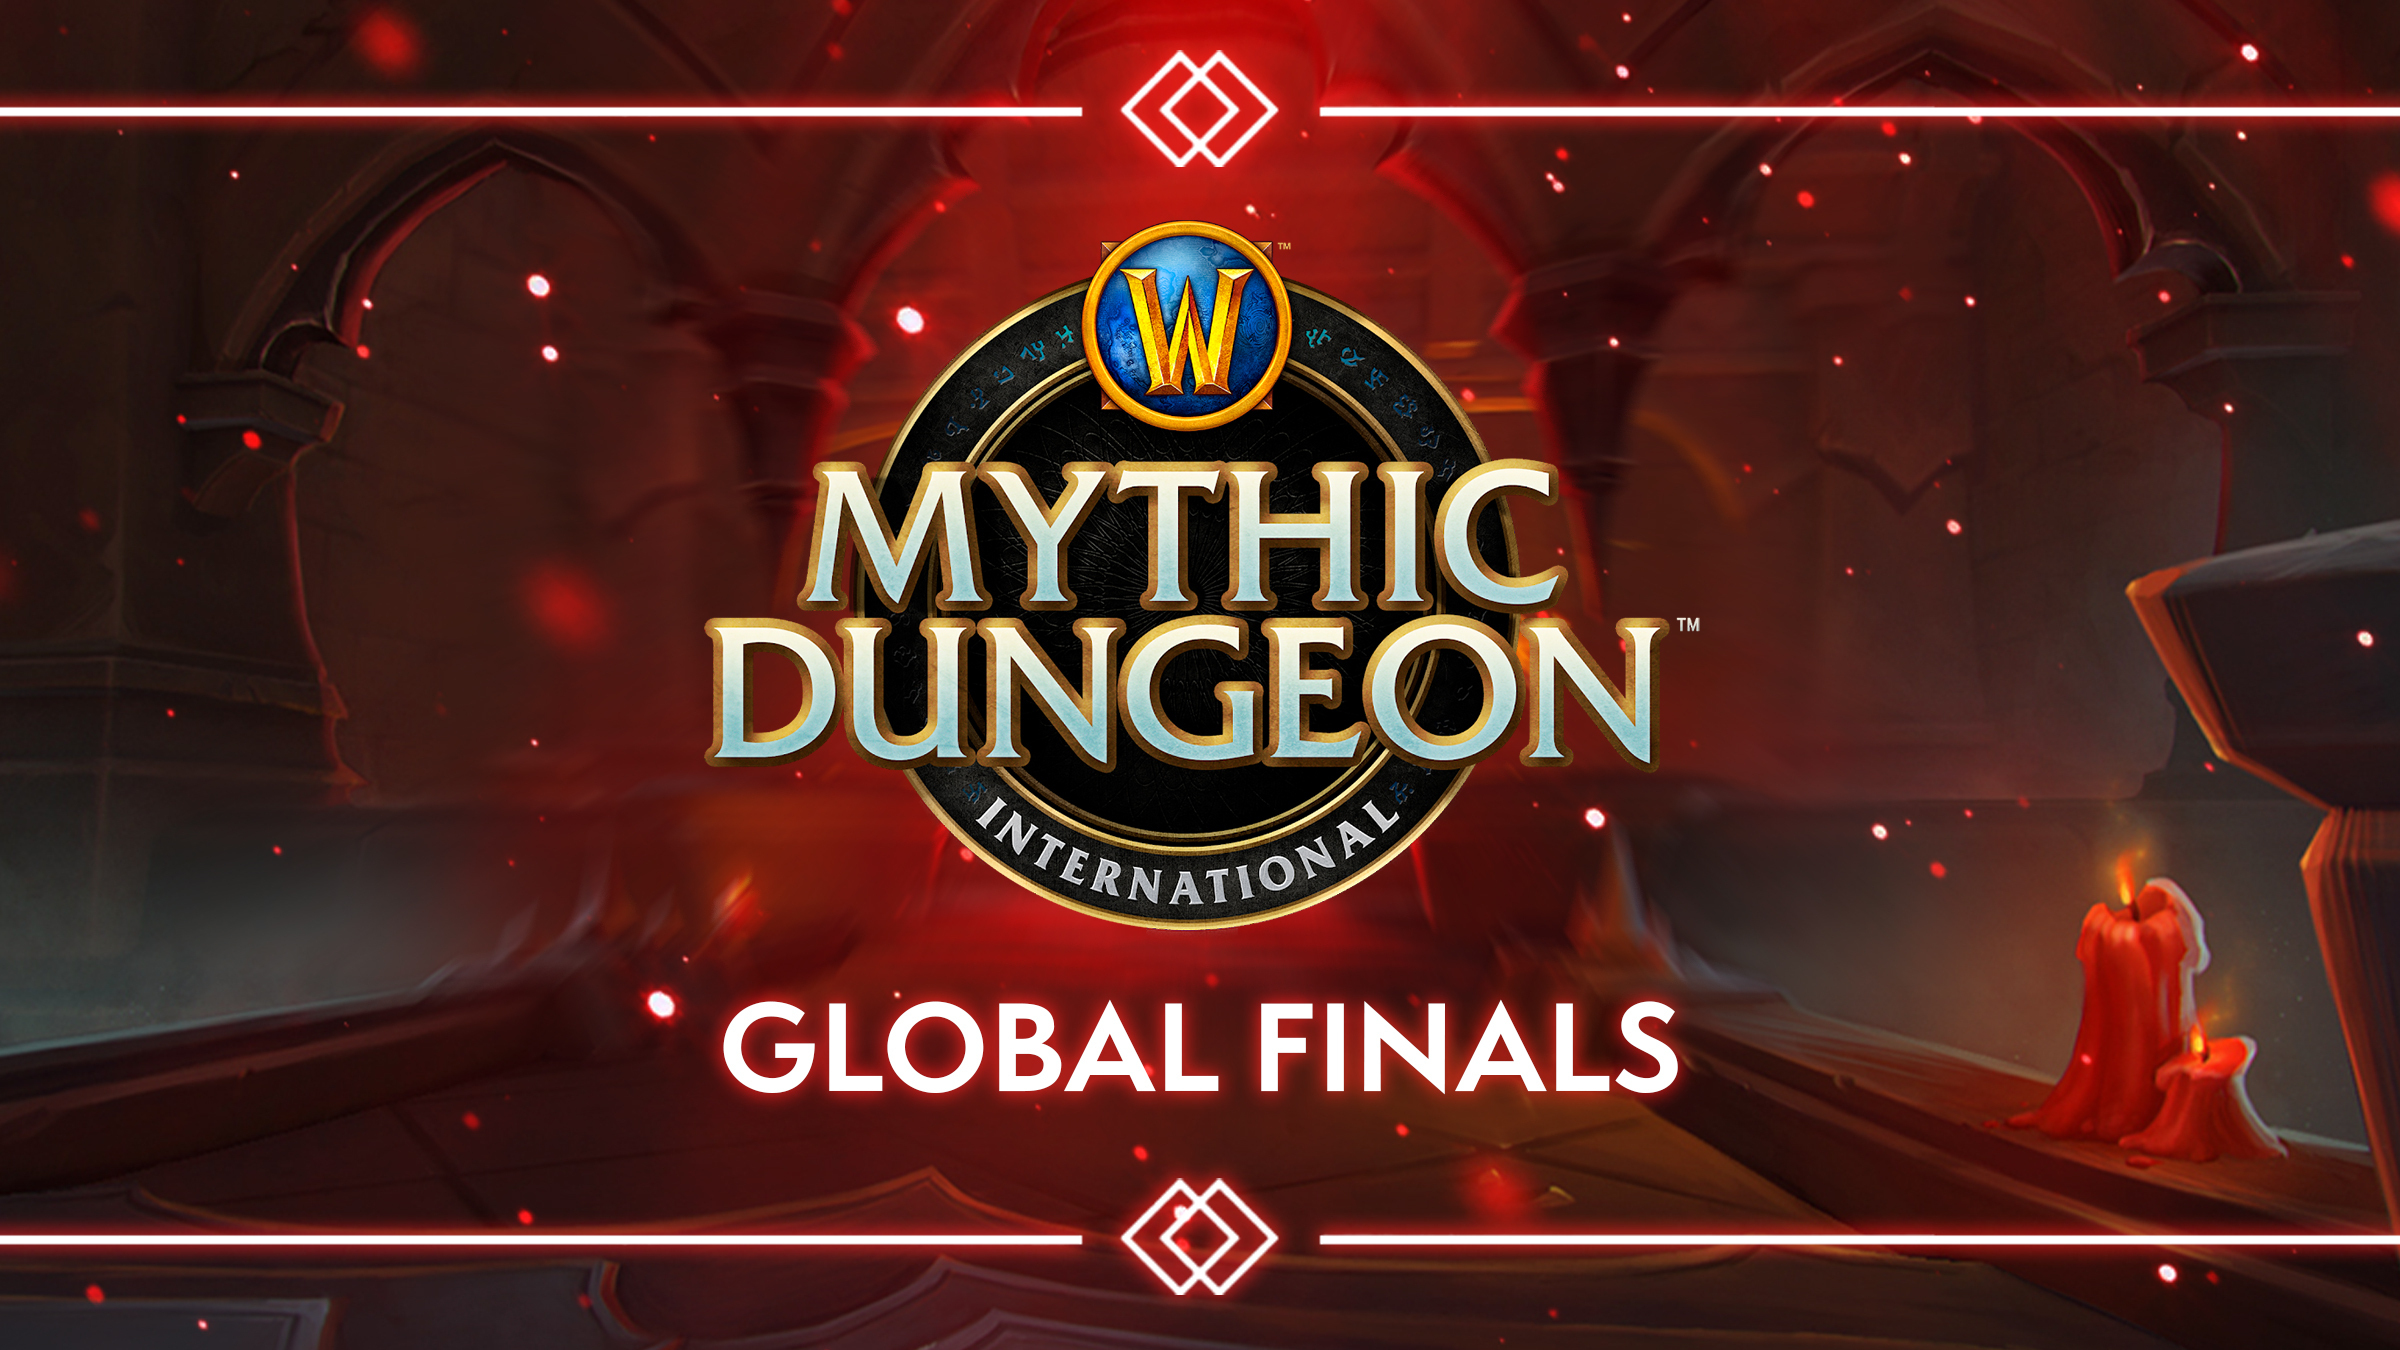 Zuschauerguide: Die Mythic Dungeon International Global Finals!